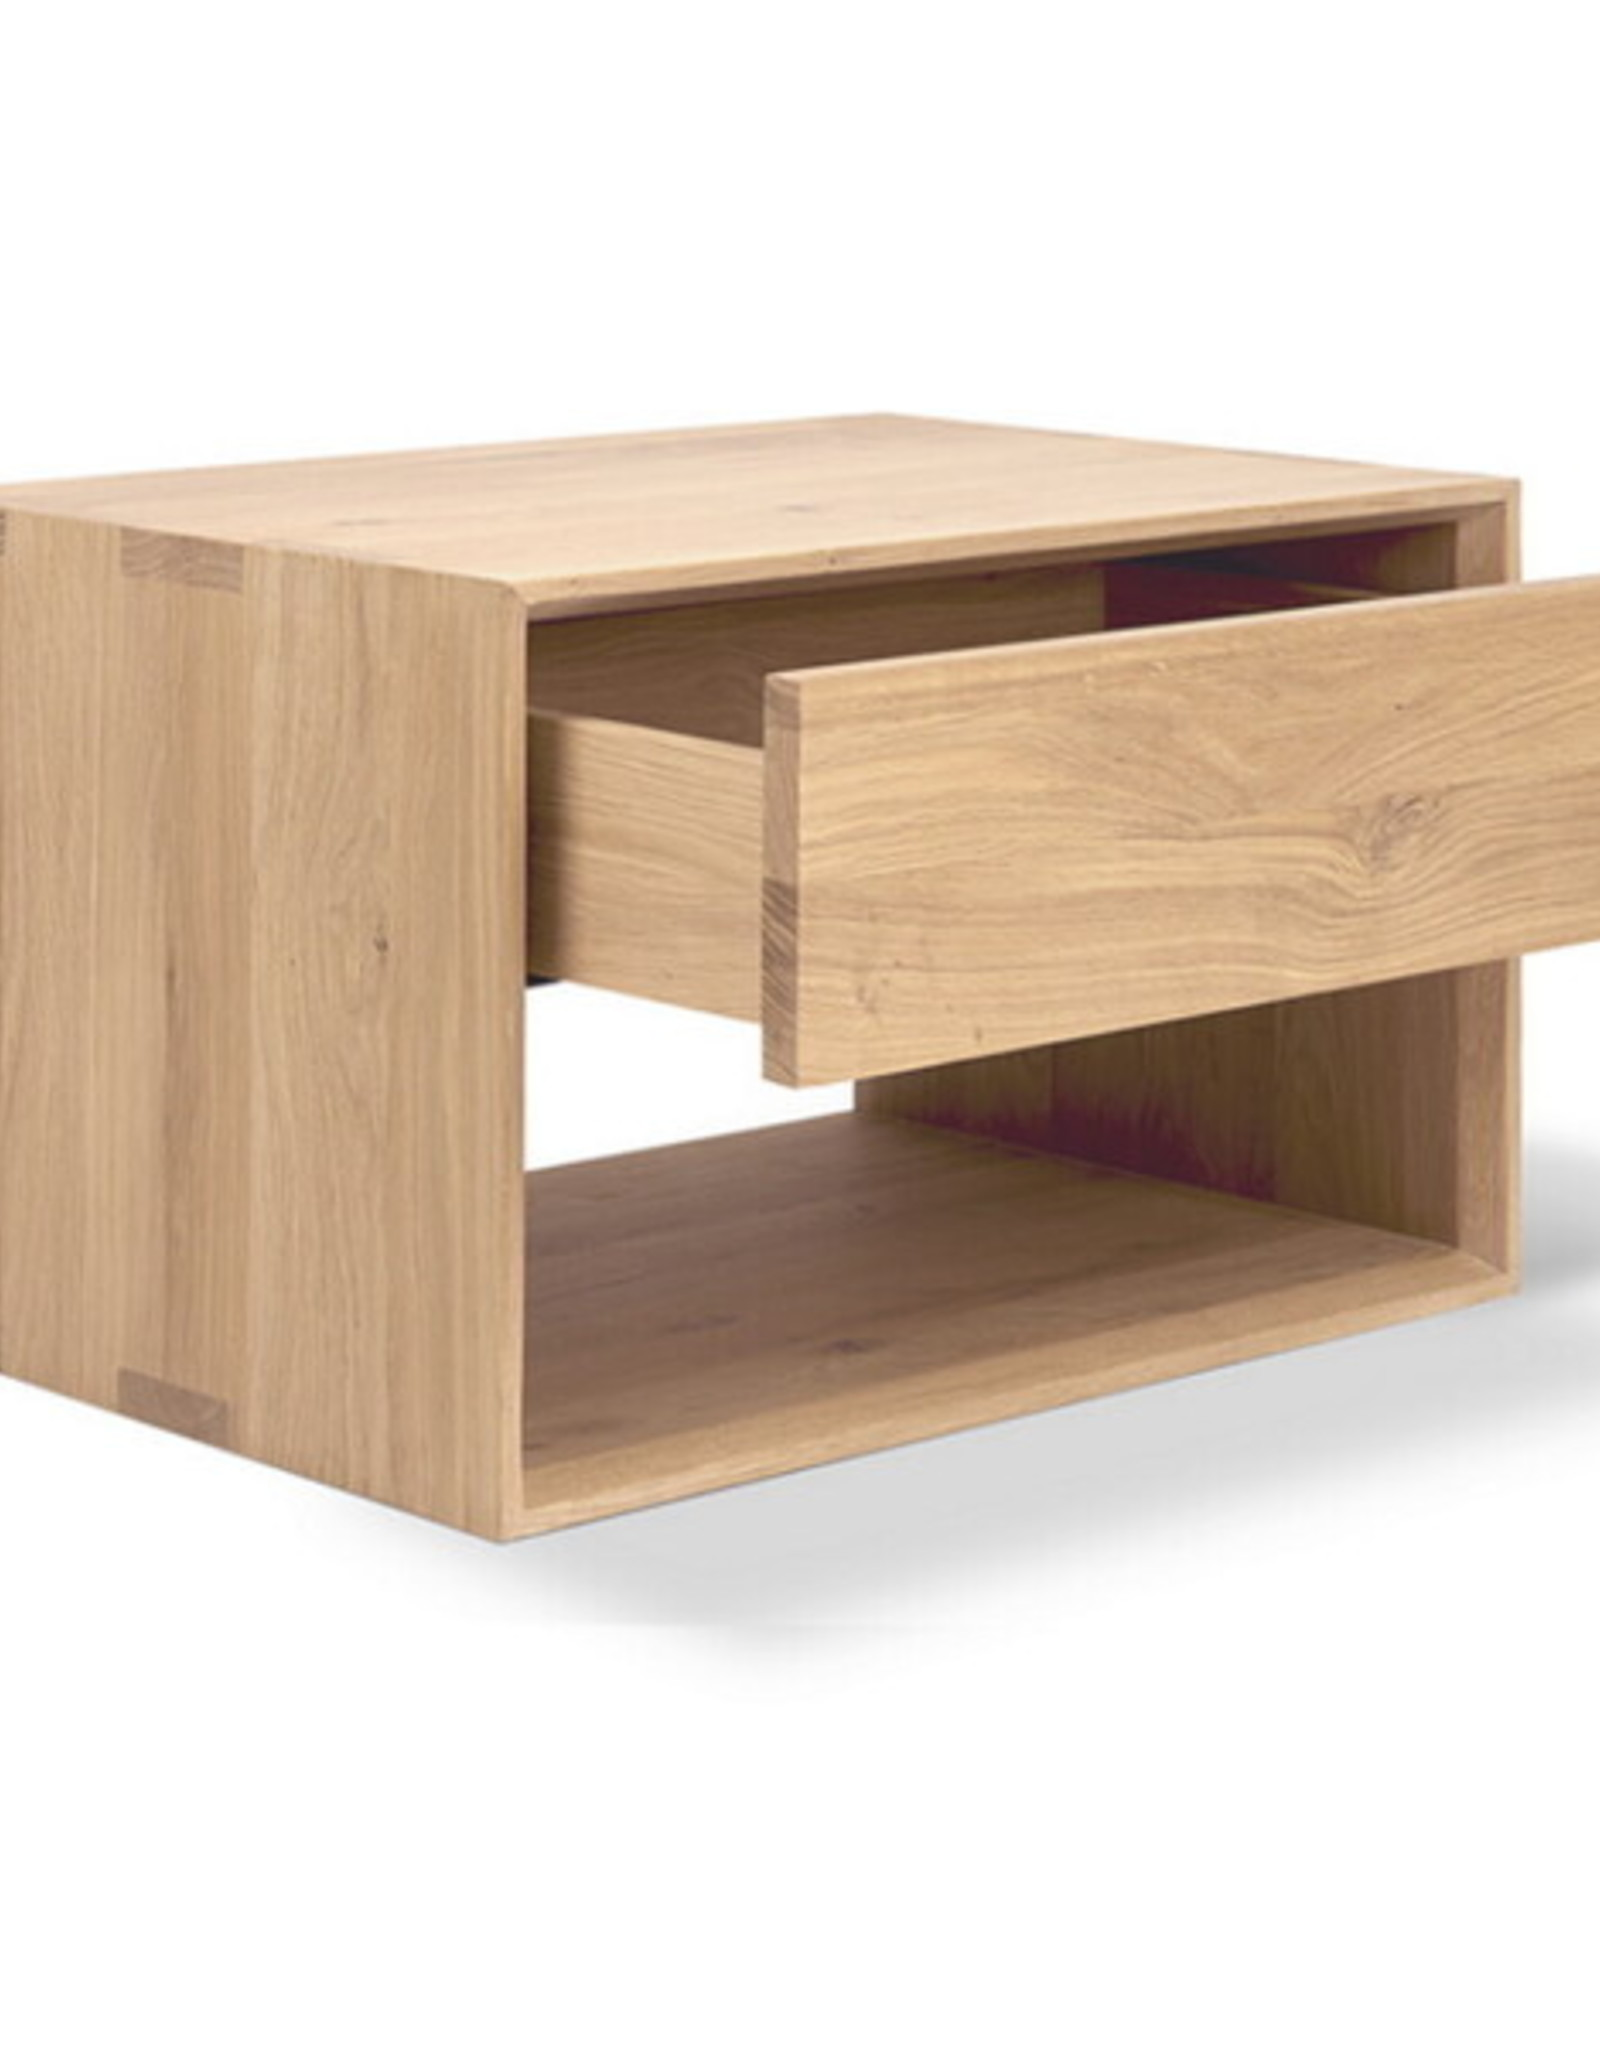 Ethnicraft USA LLC Oak Nordic II Bedside Table